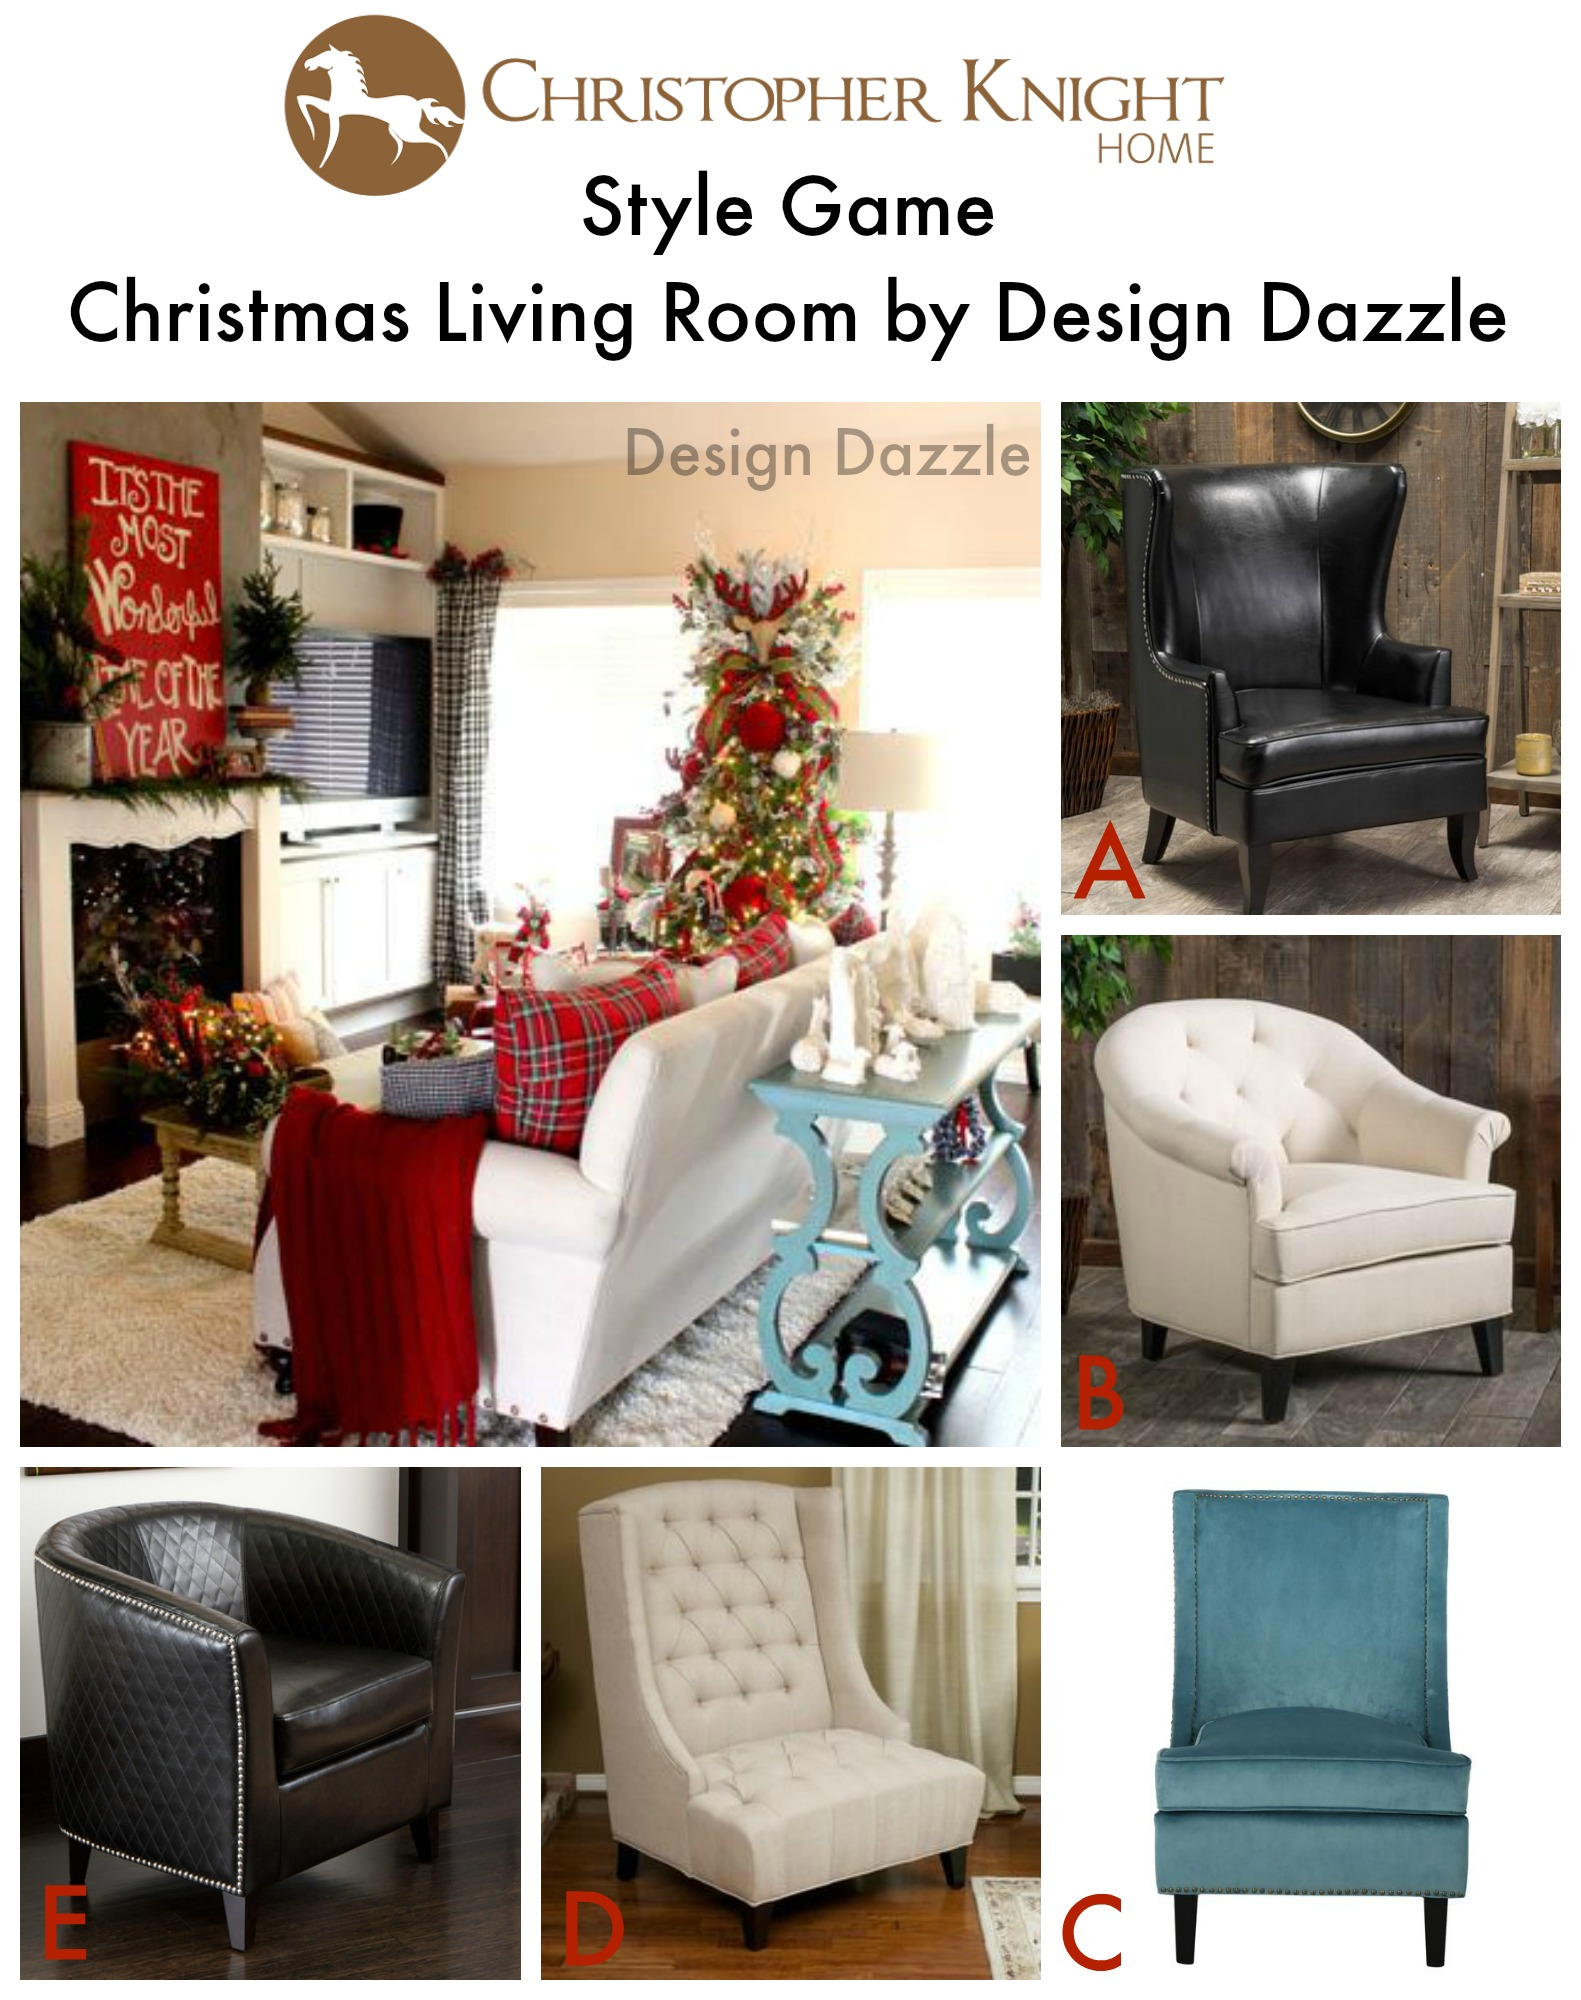 Style Game Design Dazzle Christmas Living Room